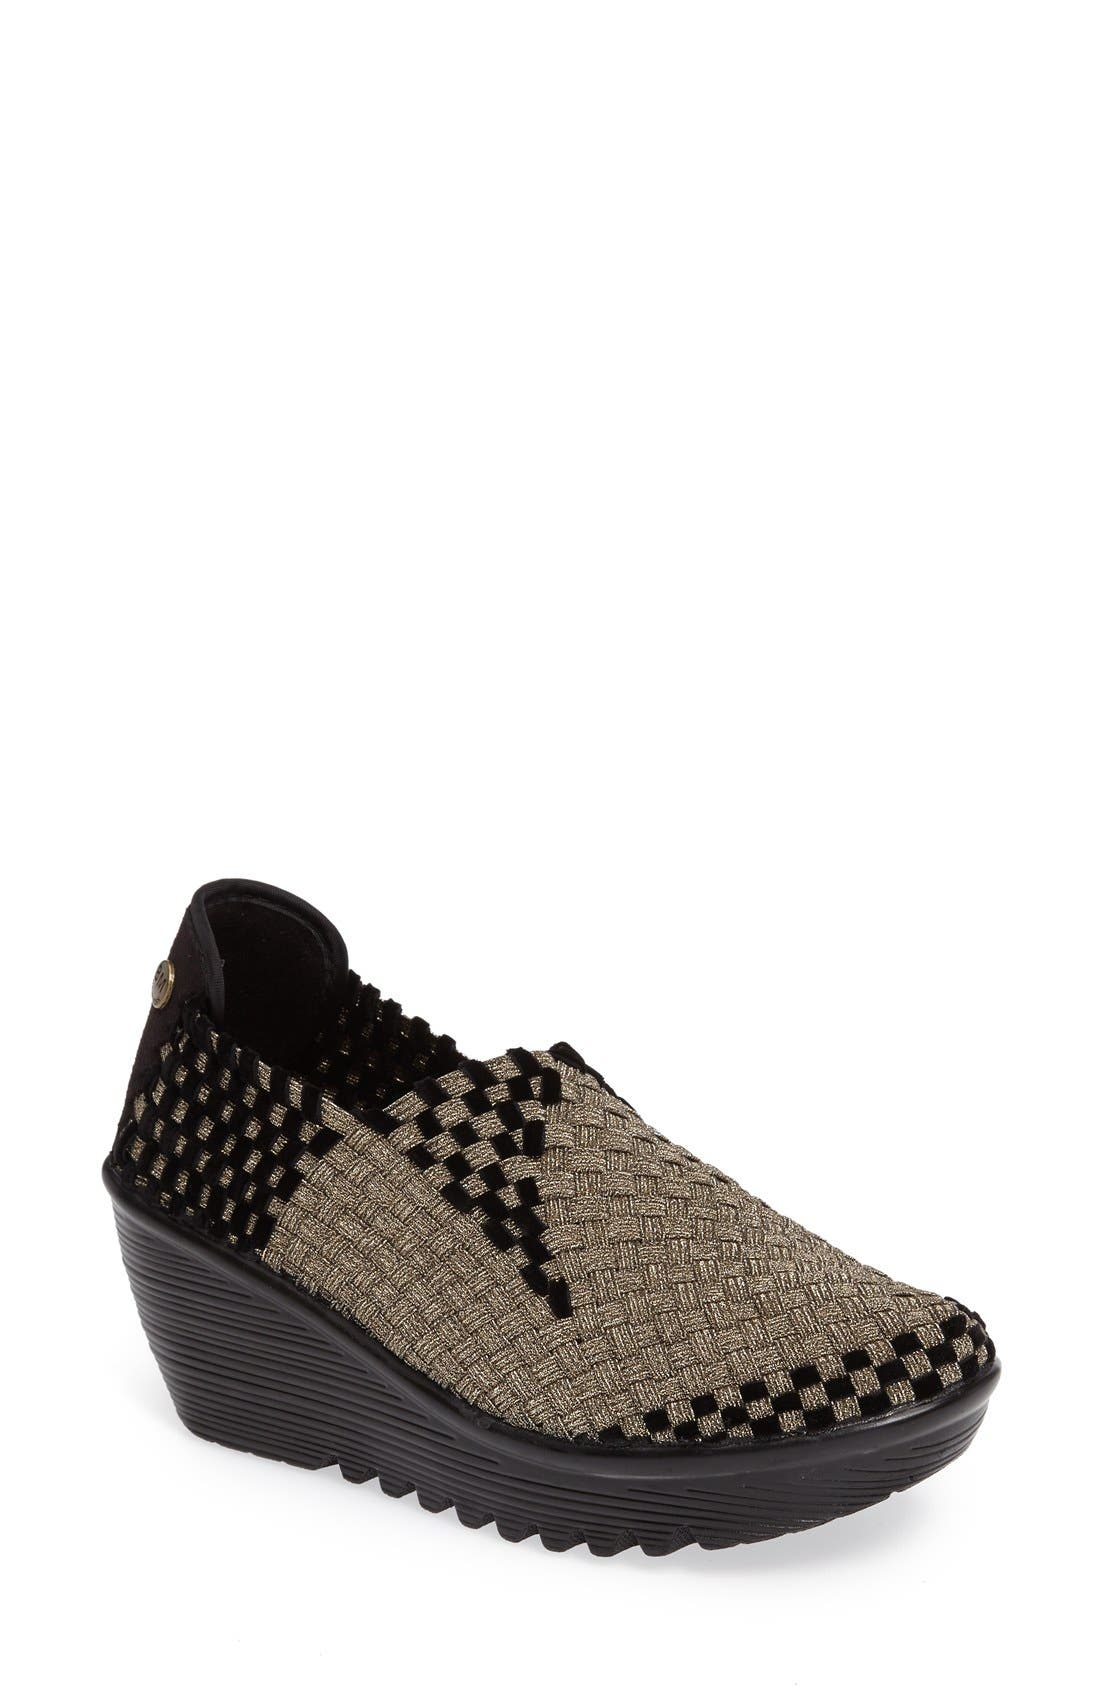 bernie mev. Gem Woven Platform Wedge (Women)